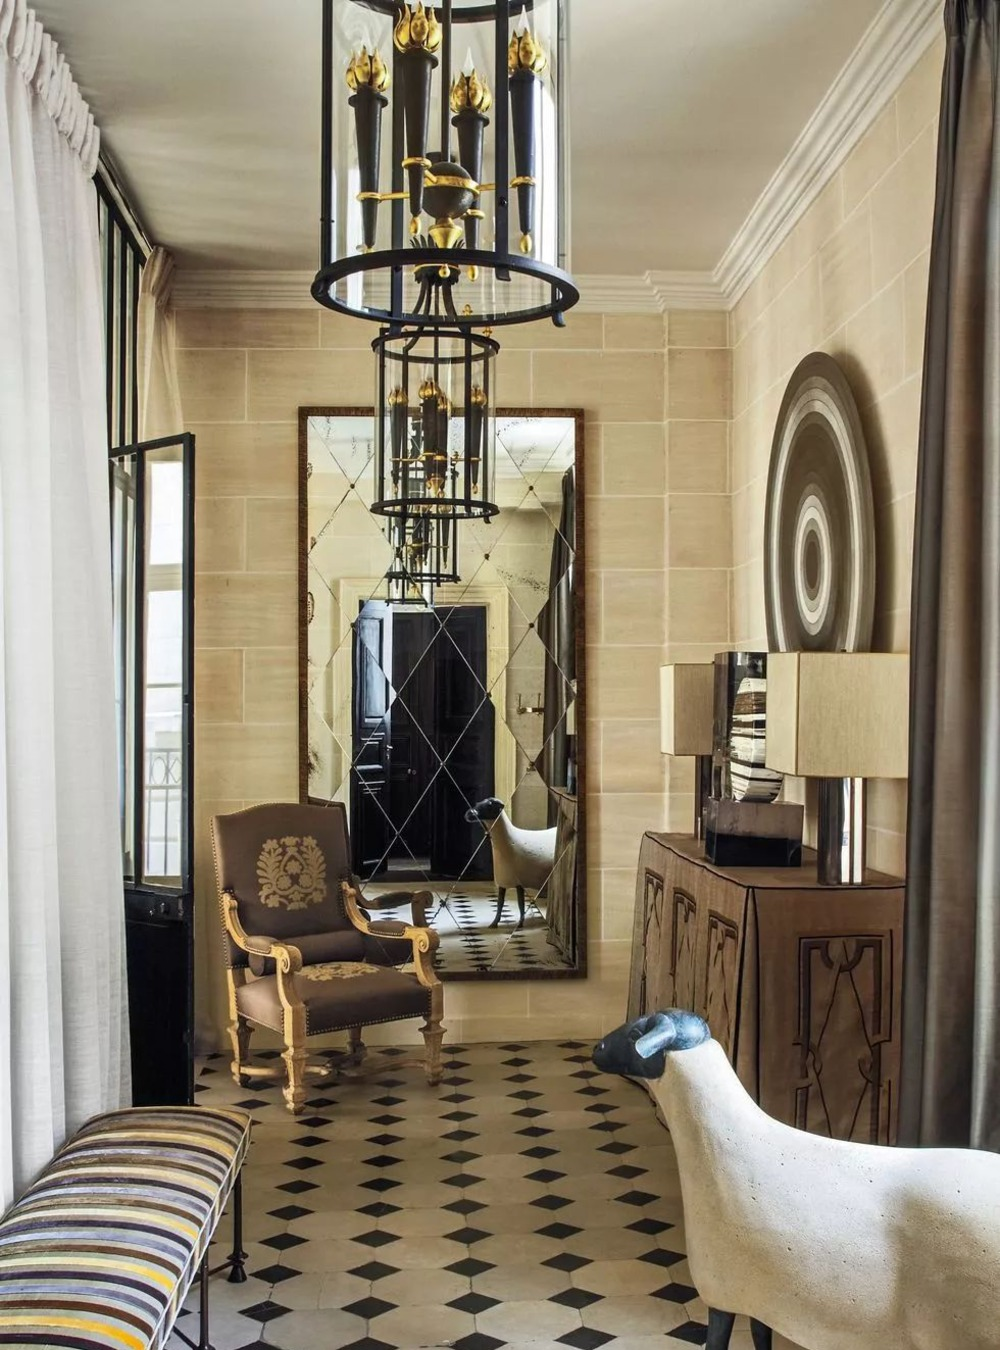 entryway lighting ideas 22 Outrageously Stunning Entryway Lighting Ideas 22 Outrageously Stunning Entryway Lighting Ideas 1 2